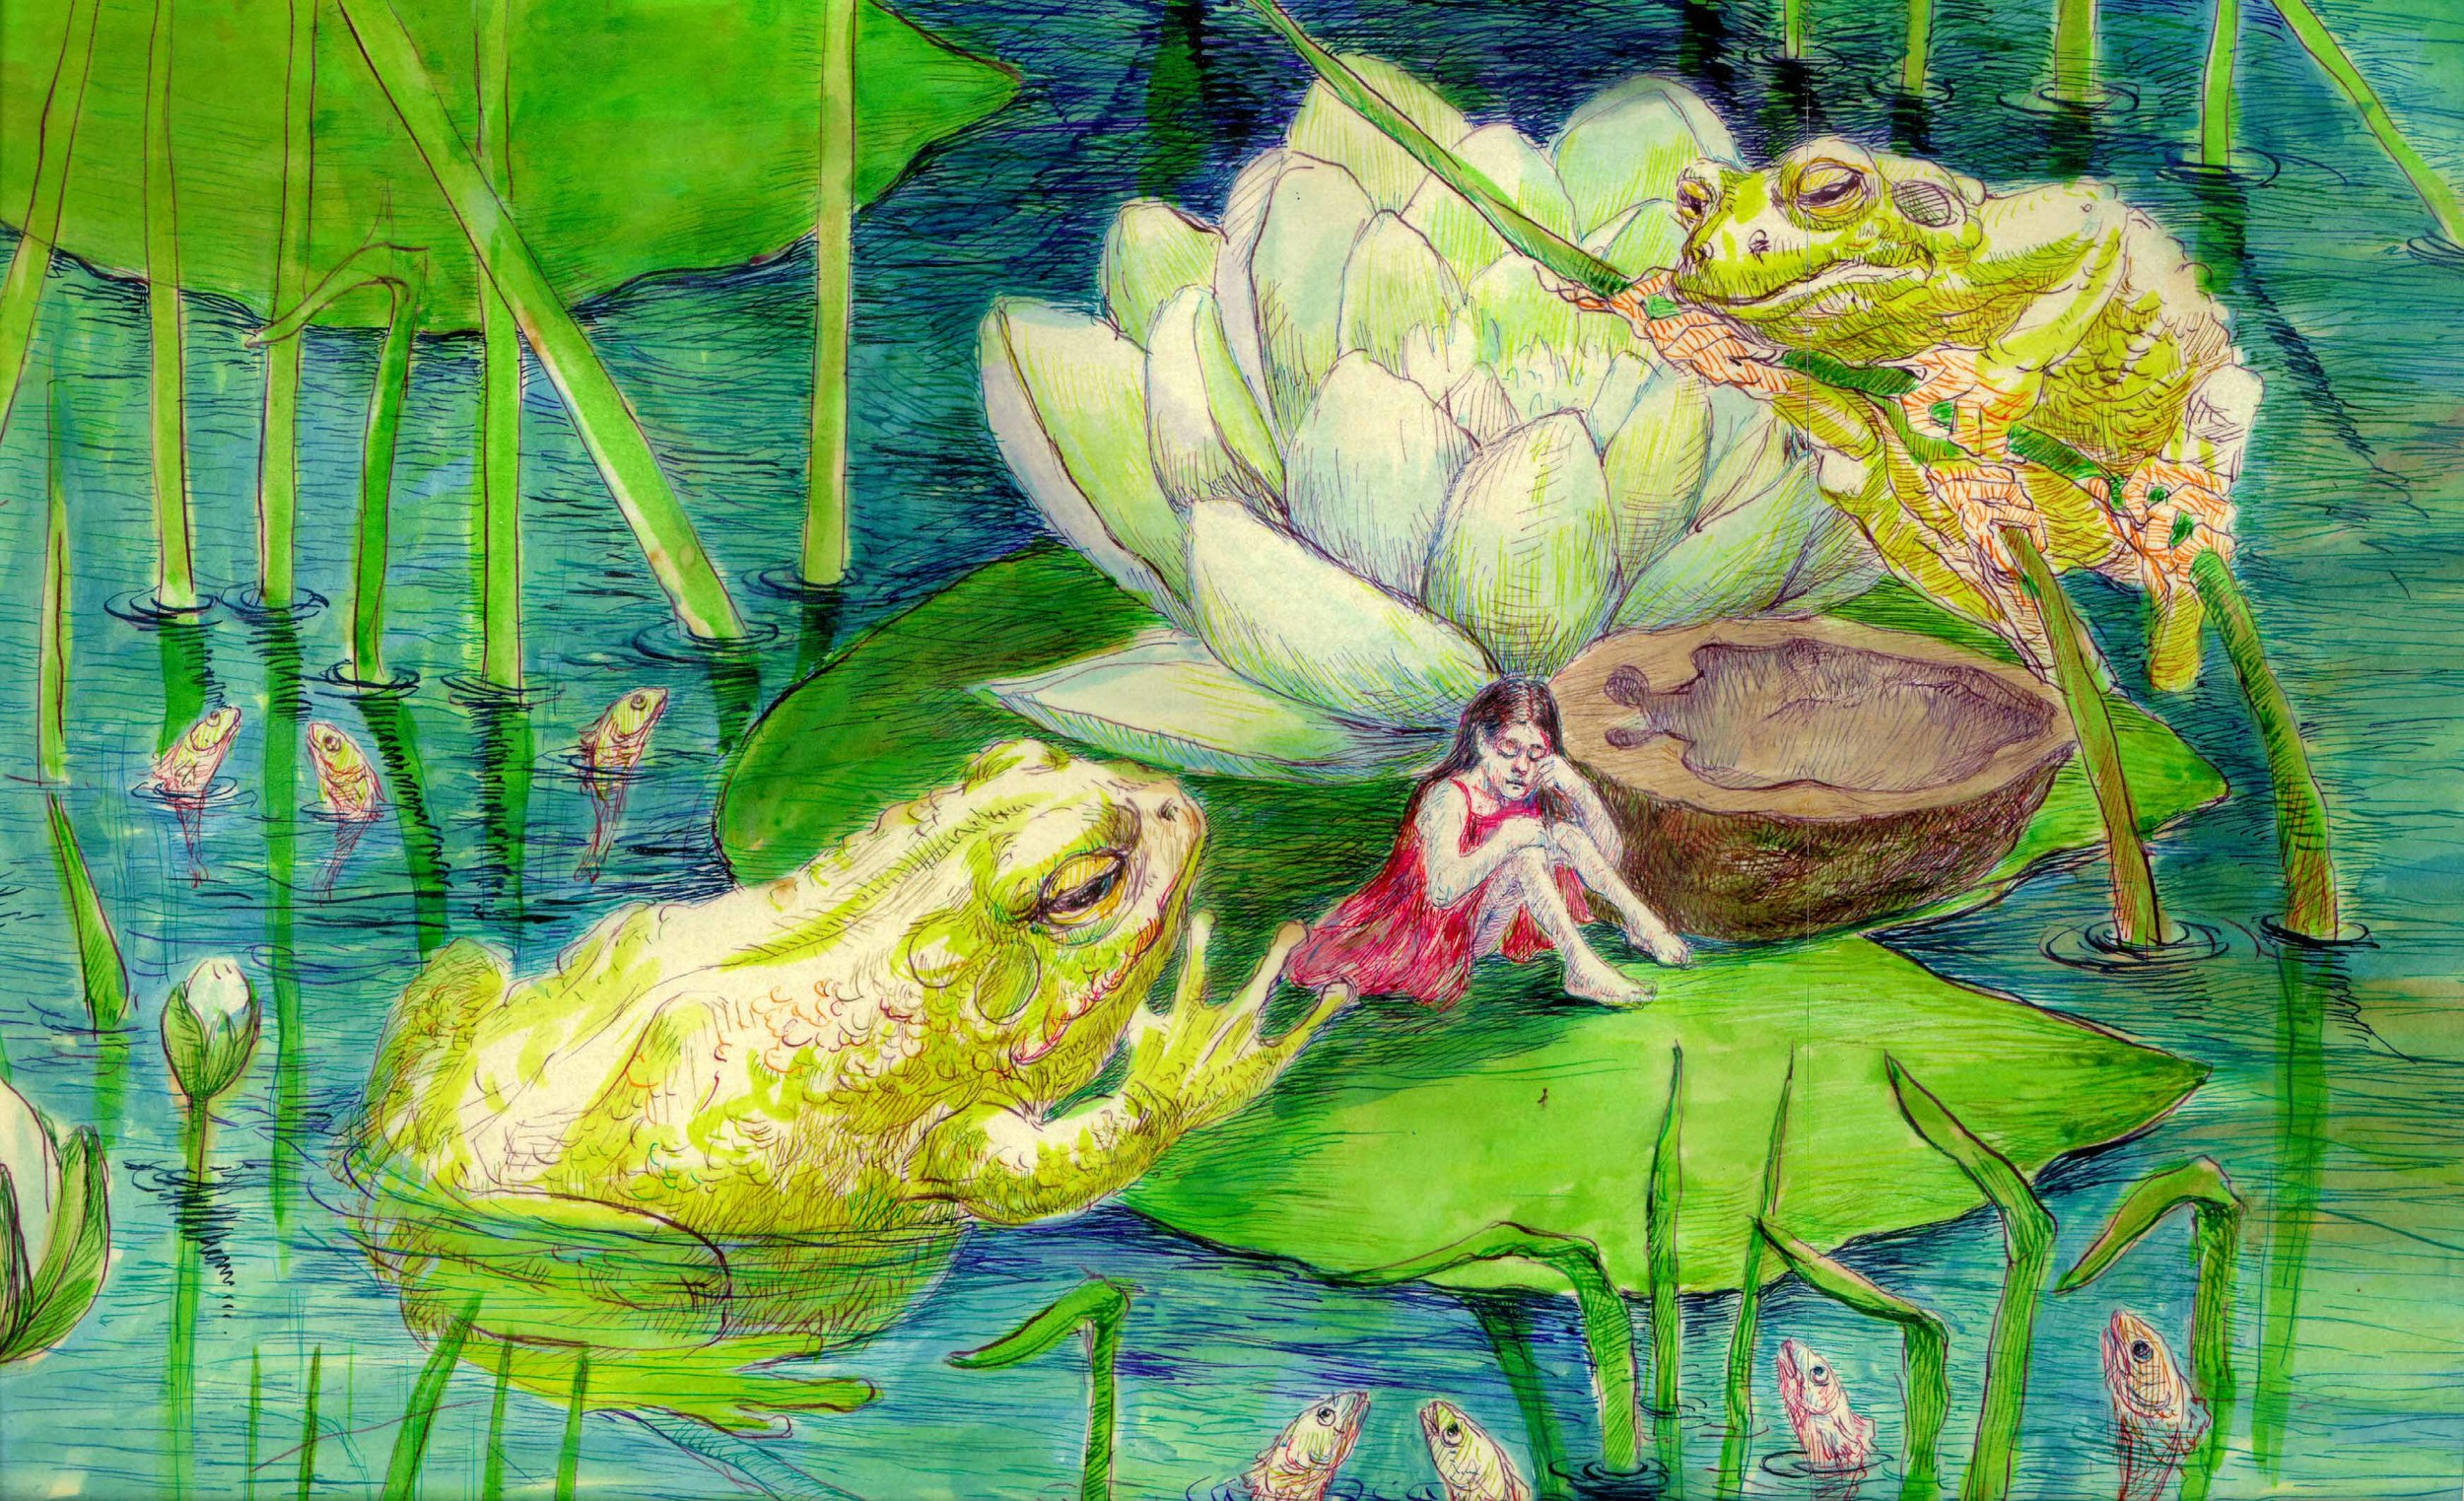 thumbelina with mother toad and her son.jpg